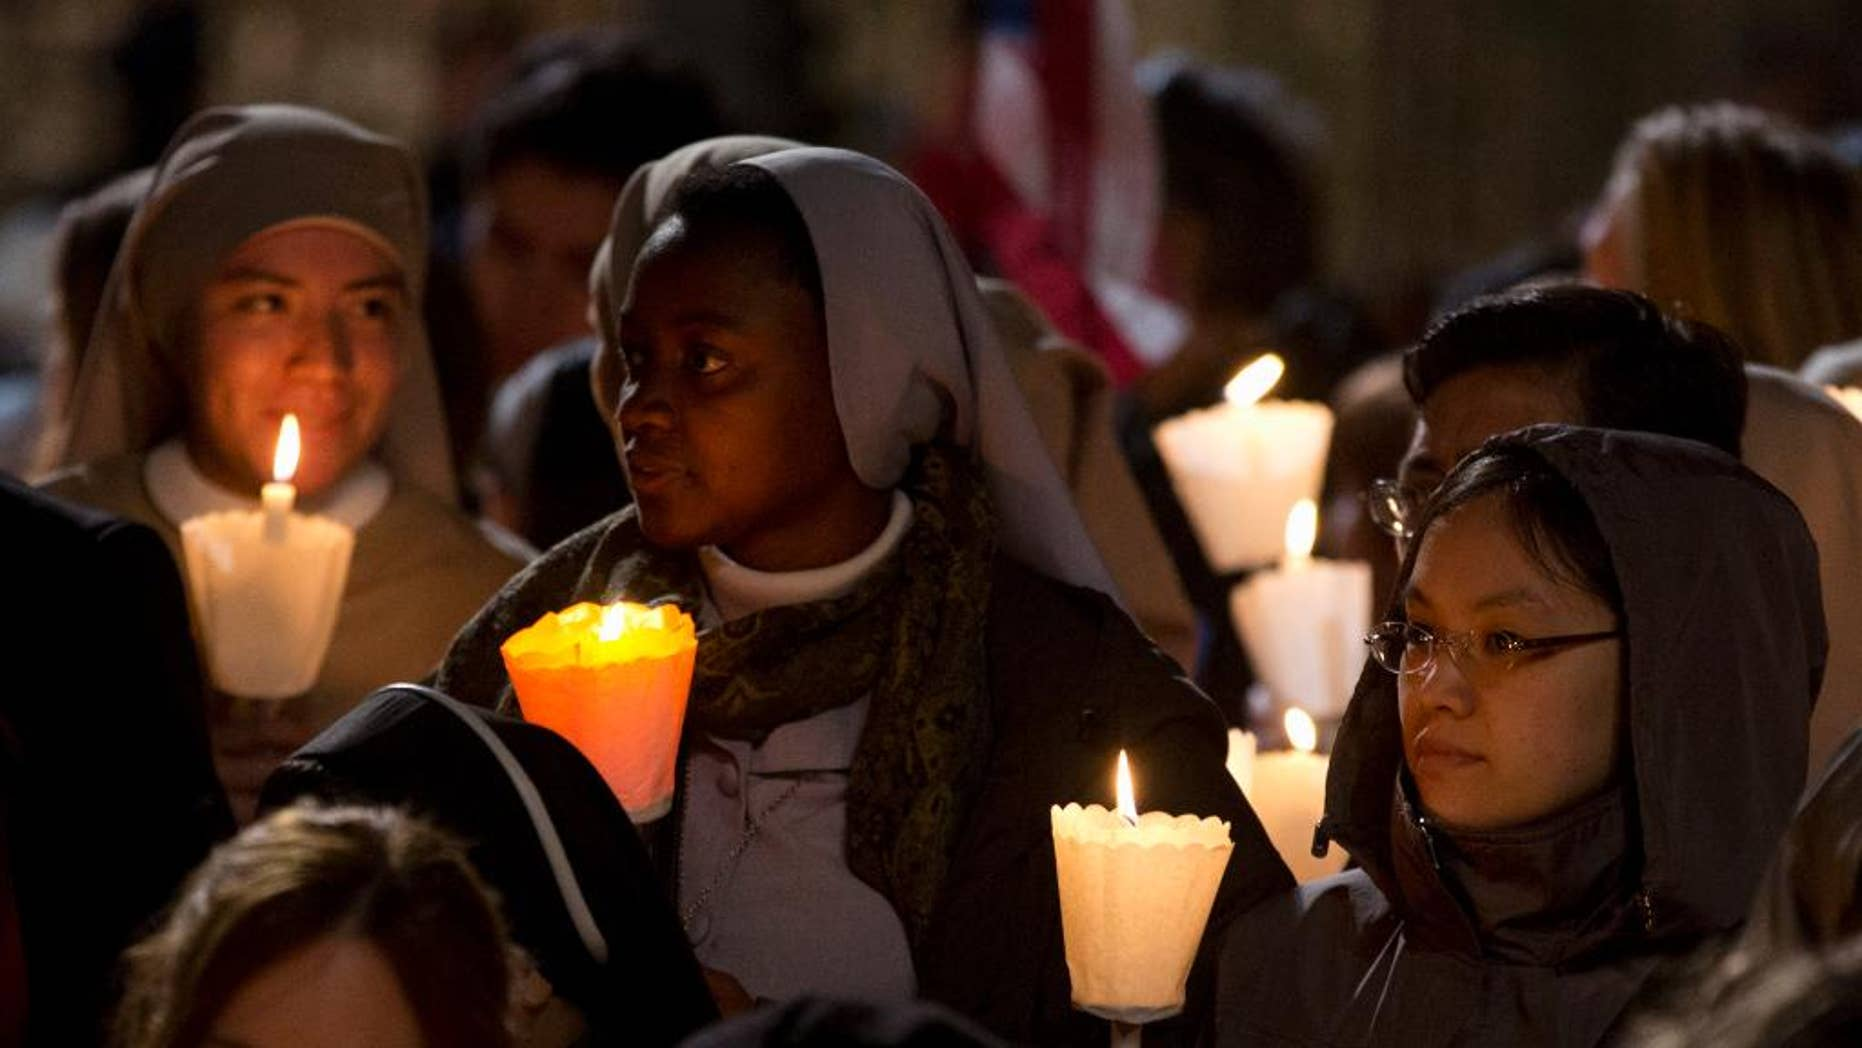 Faithful attend the Via Crucis (Way of the Cross) torchlight procession celebrated by Pope Francis in front of the Colosseum on Good Friday in Rome, Friday, April 18, 2014. (AP Photo/Gregorio Borgia)